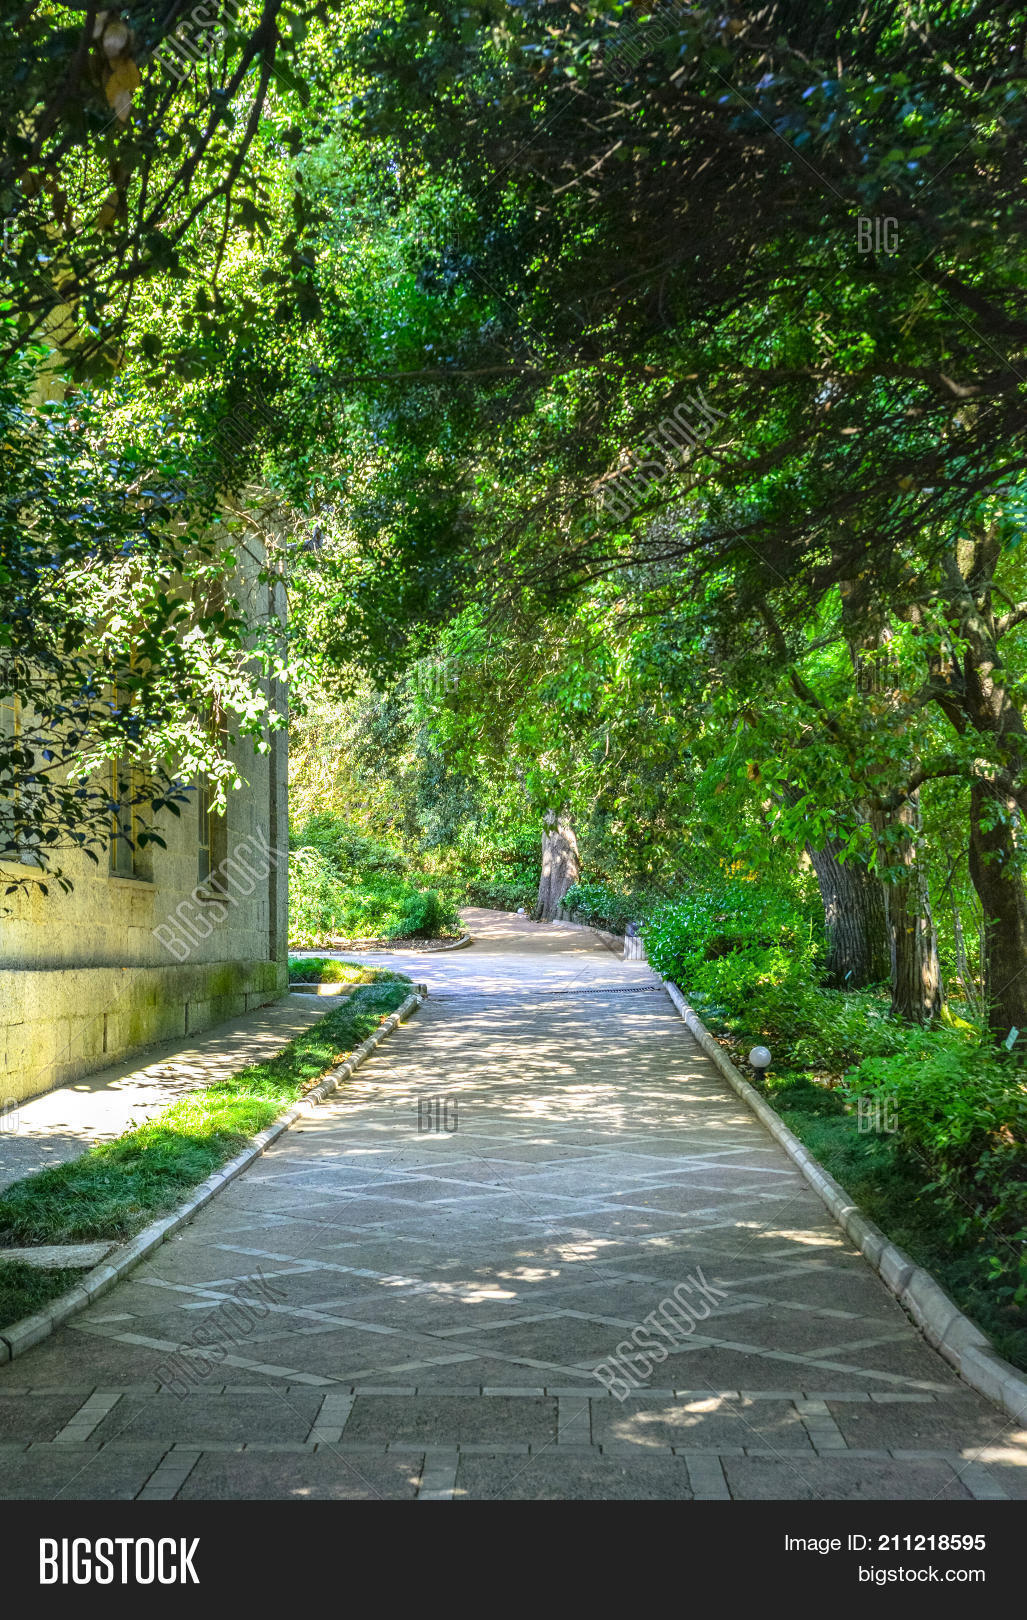 Green Park Road Trees Image Photo Free Trial Bigstock